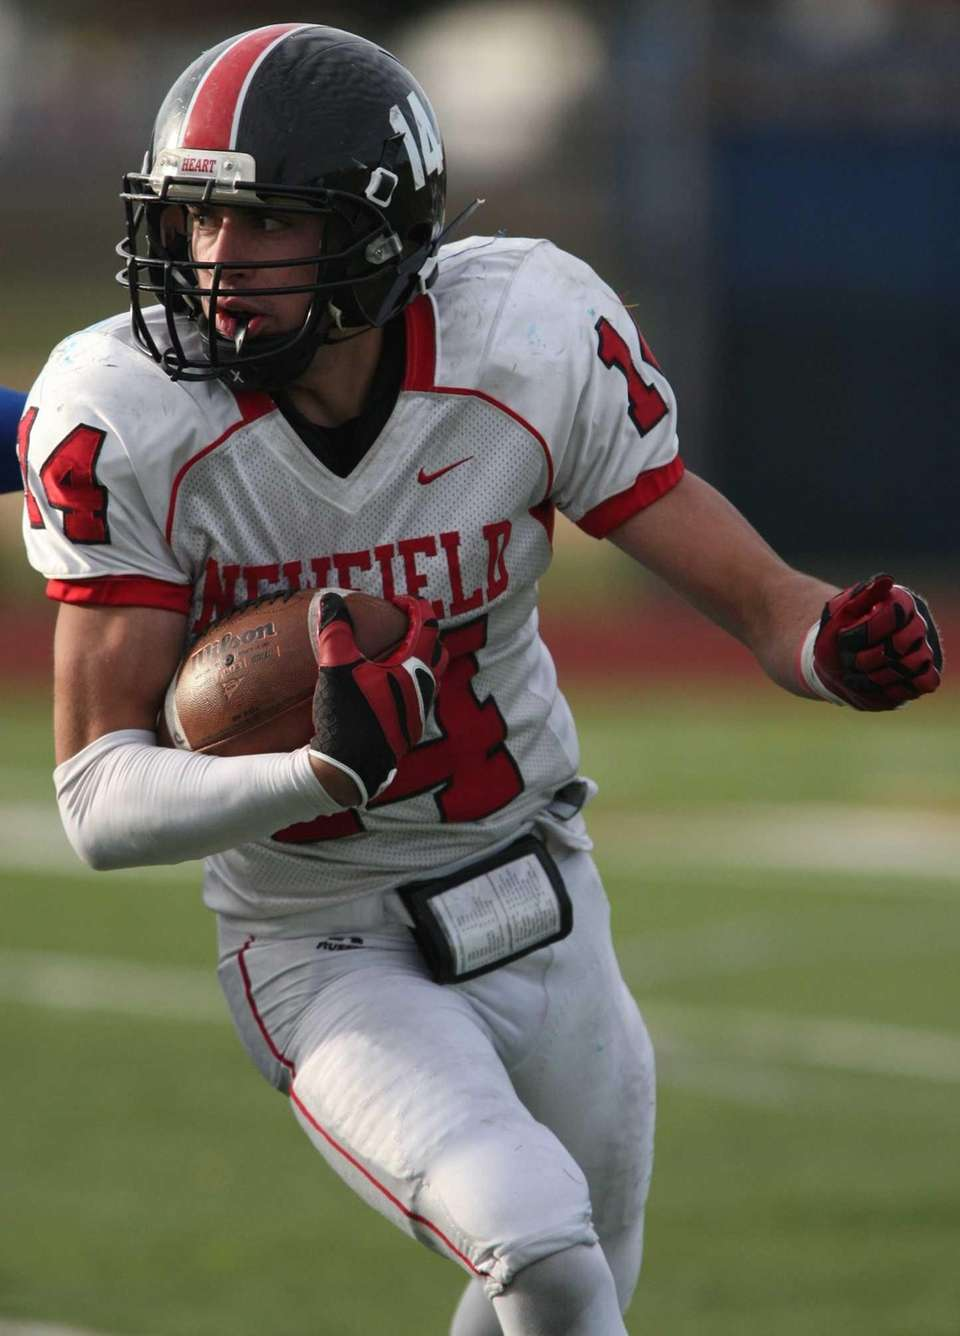 Dylan Harned of Newfield carries the ball during